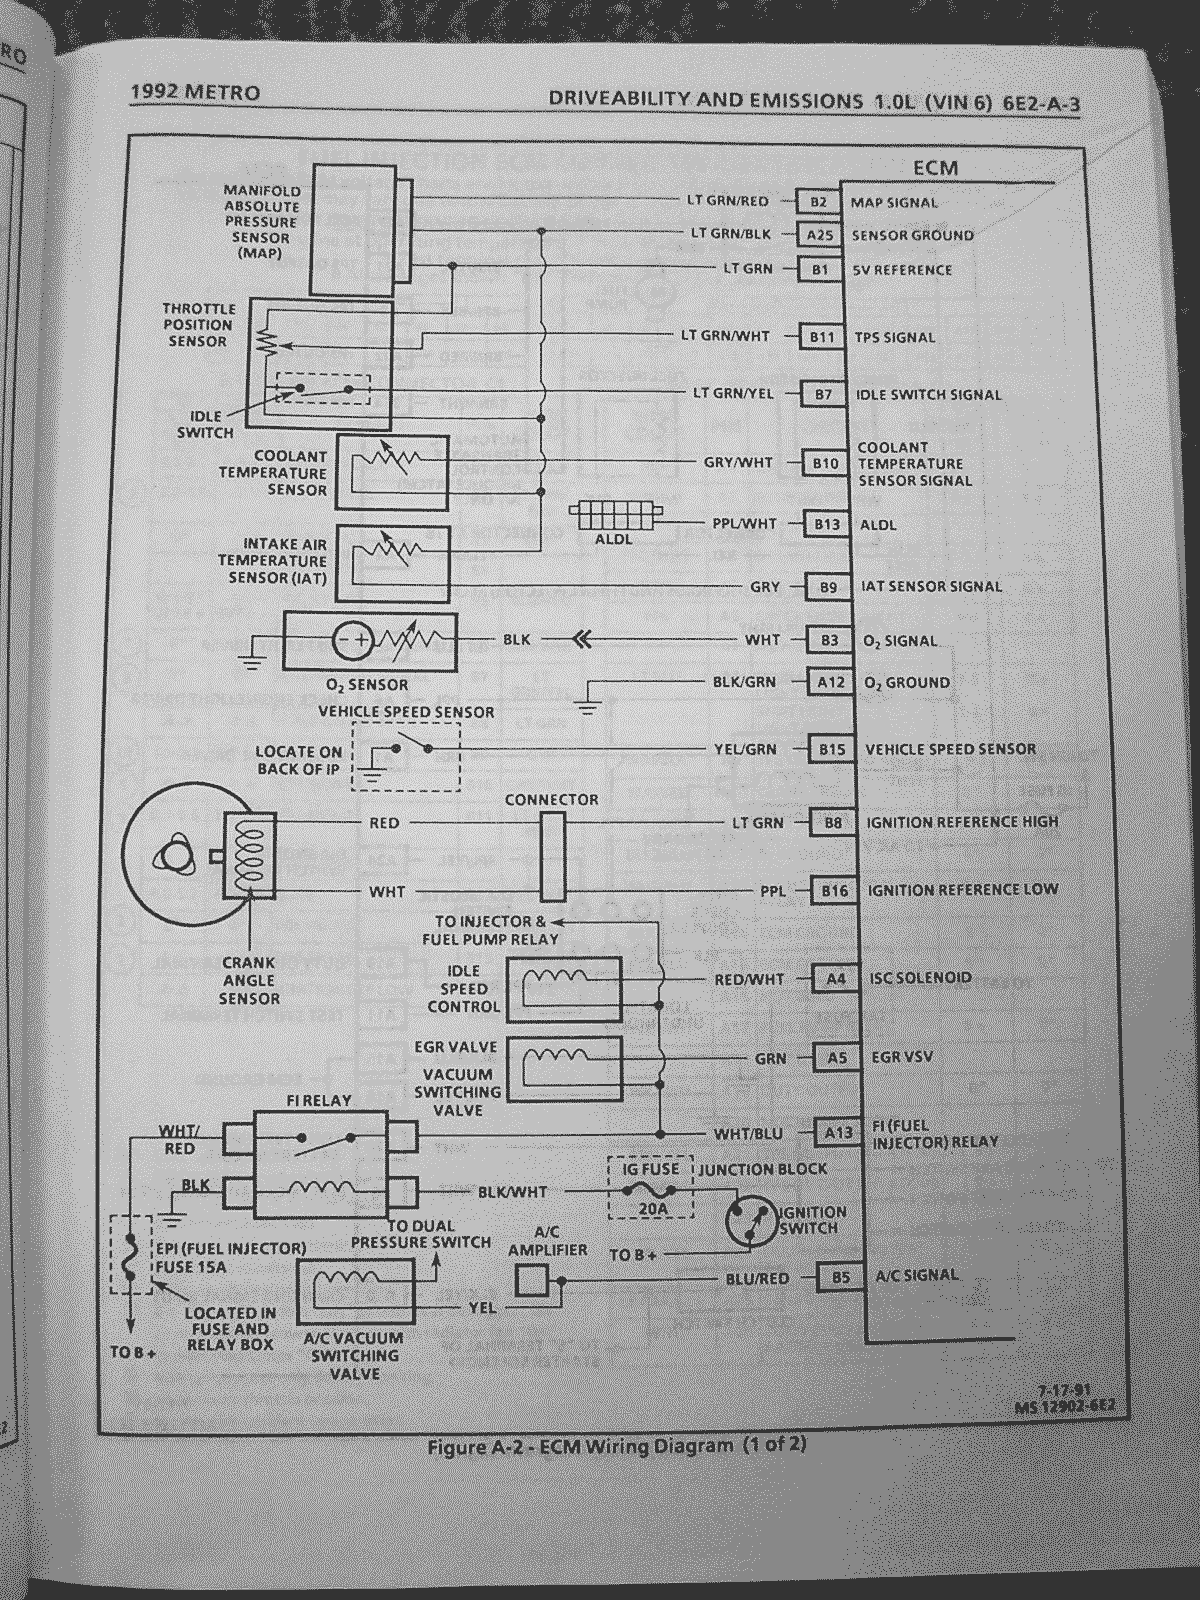 6e2 a 3 chevy metro fuse box diagram lexus ls400 fuse box diagram \u2022 free 1990 geo prizm fuse box diagram at readyjetset.co